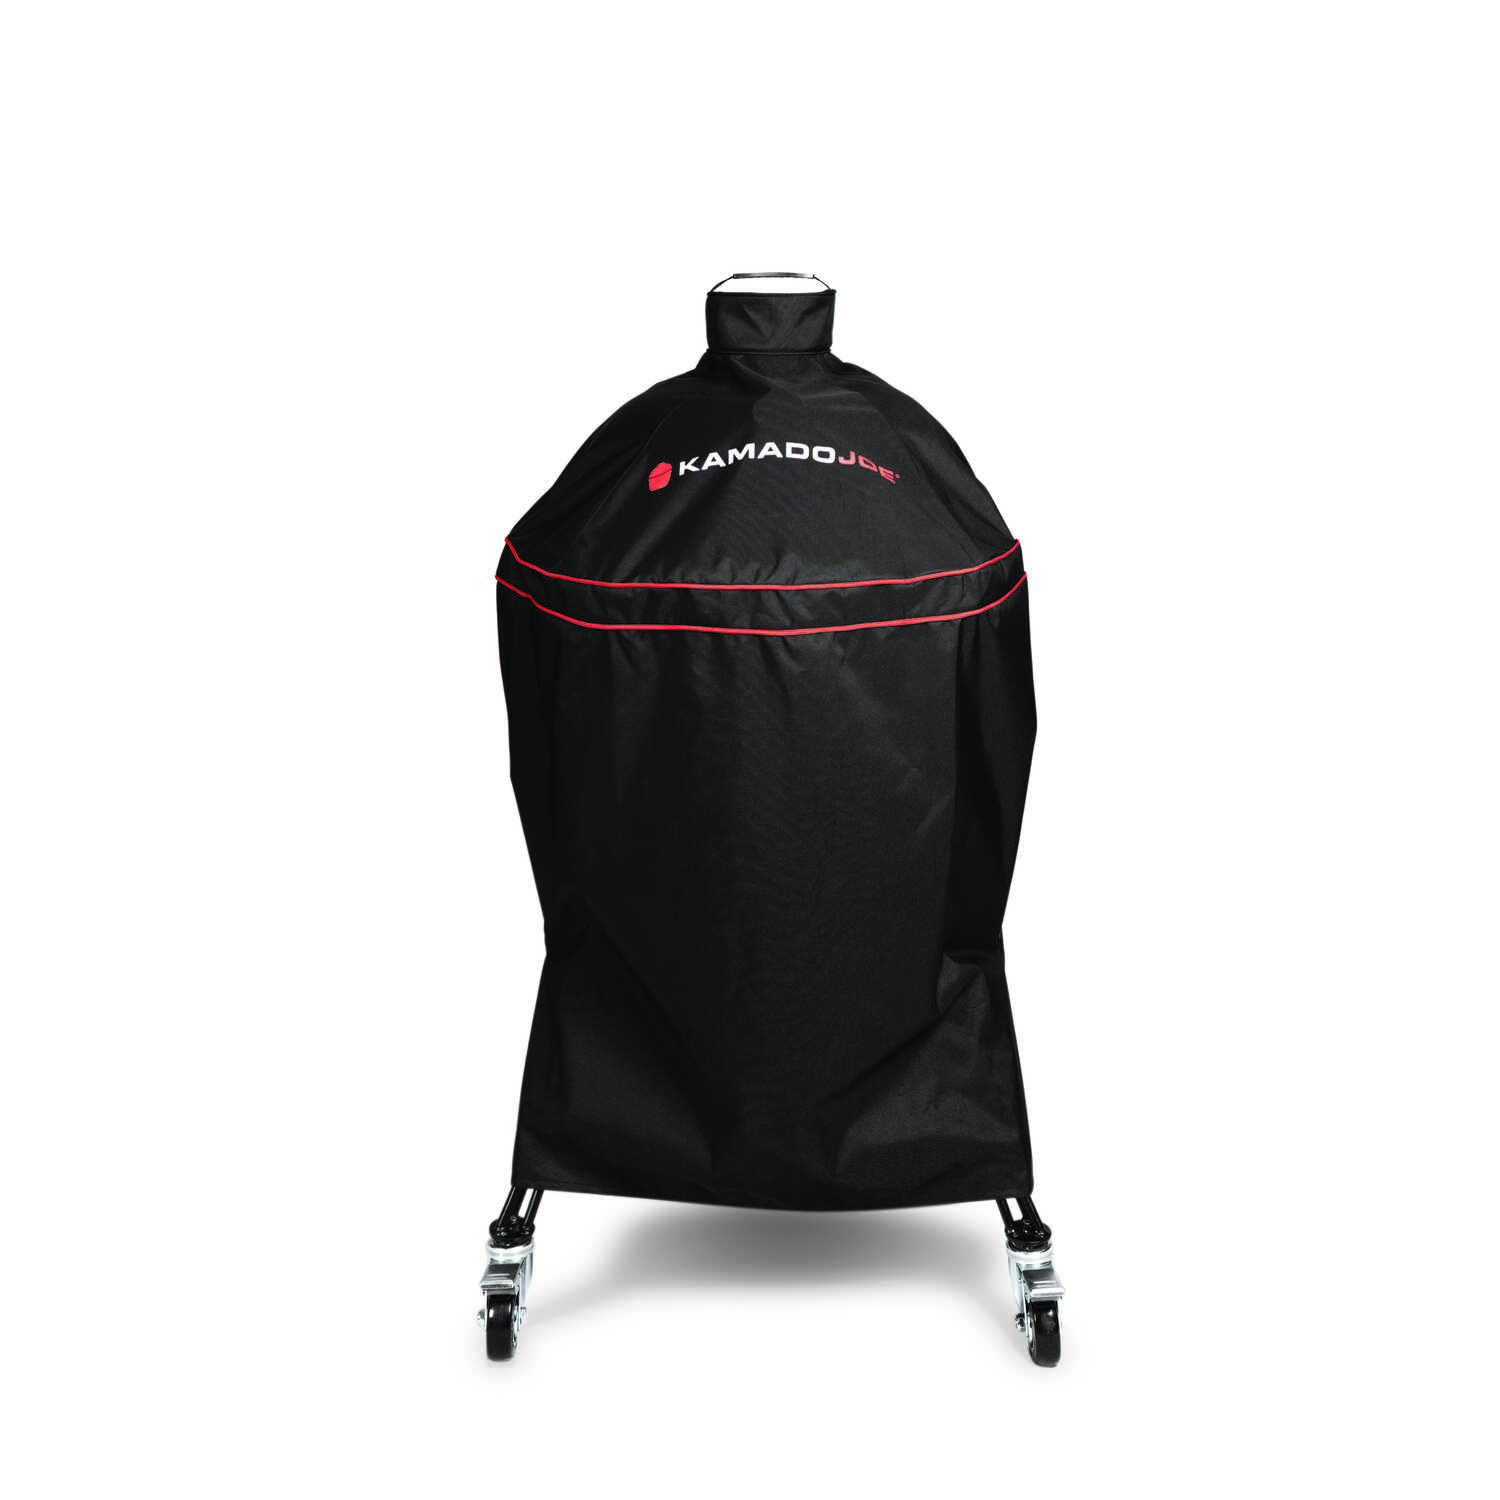 Kamado Joe  Classic joe  Black  Grill Cover  15 in. W x 1 in. D x 15 in. H For Kamado Classic Joe Gr